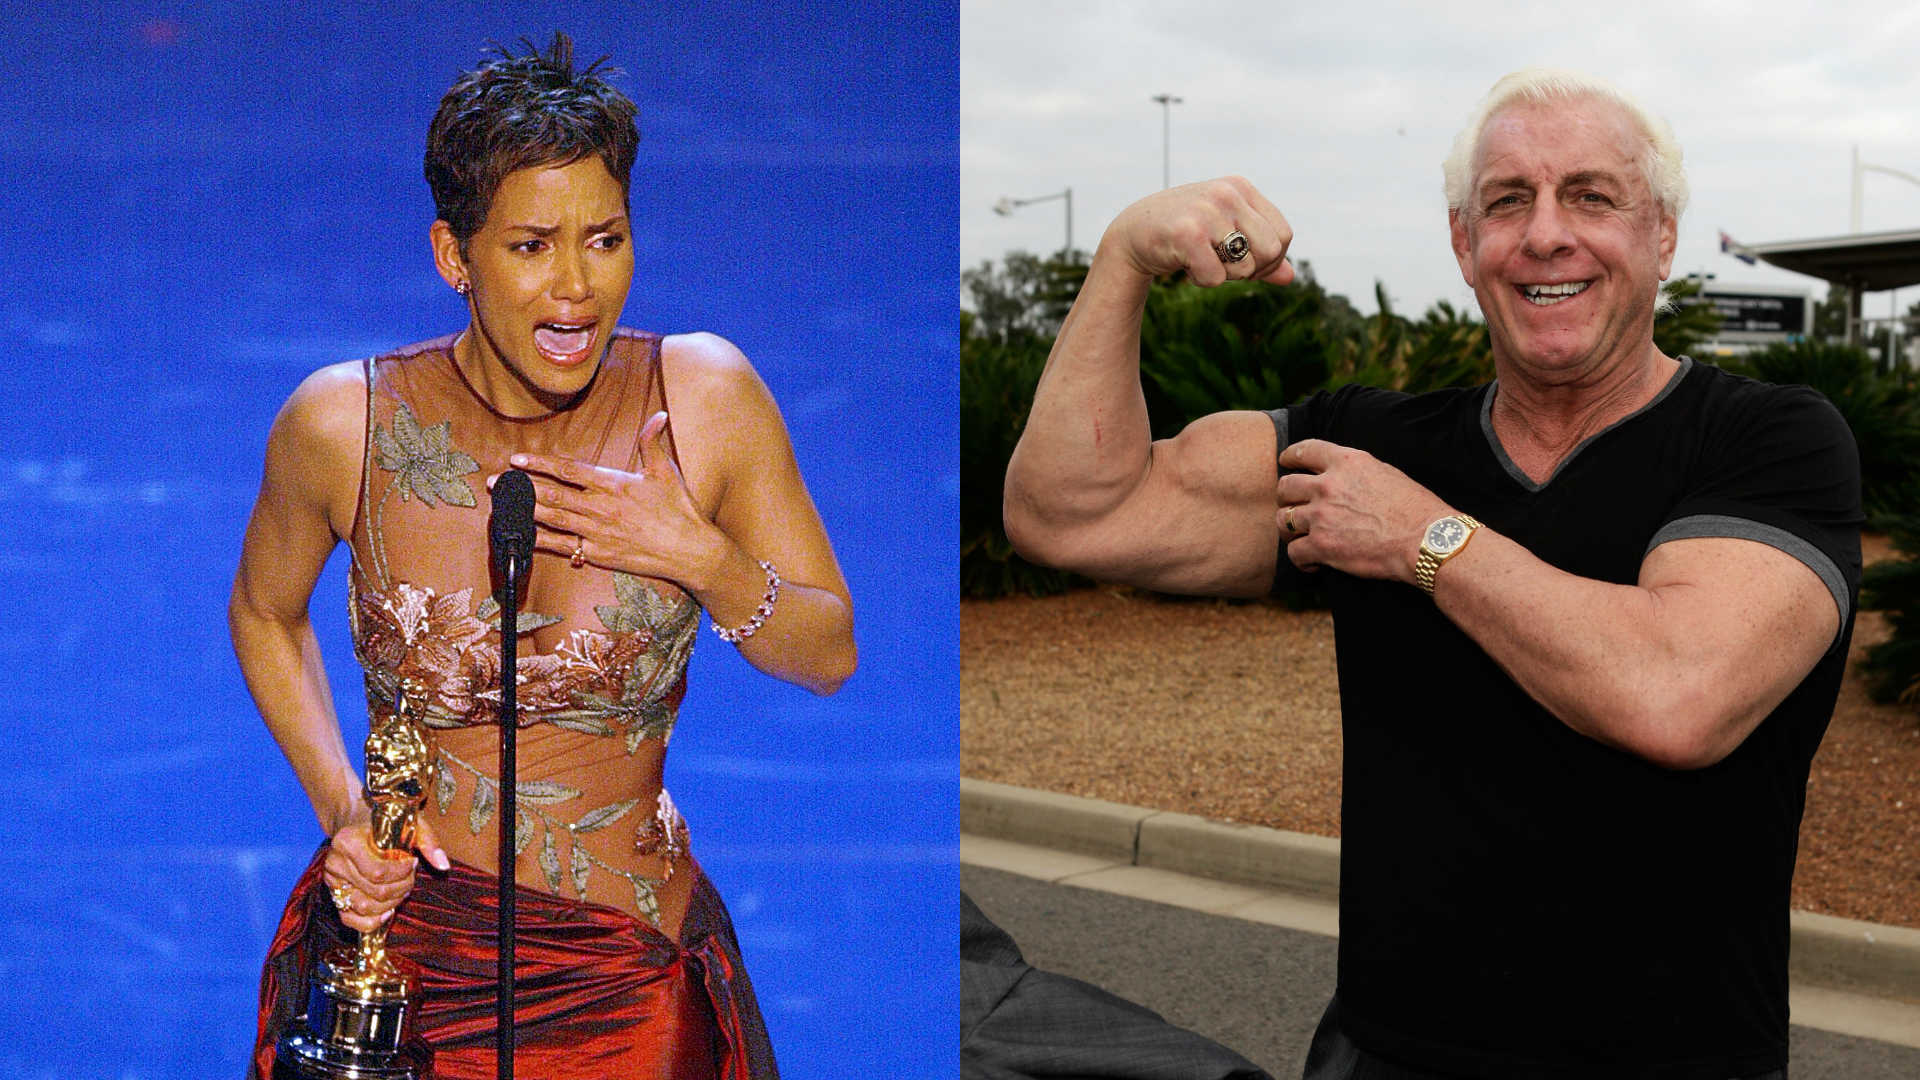 Halle Berry and Ric Flair together at last.